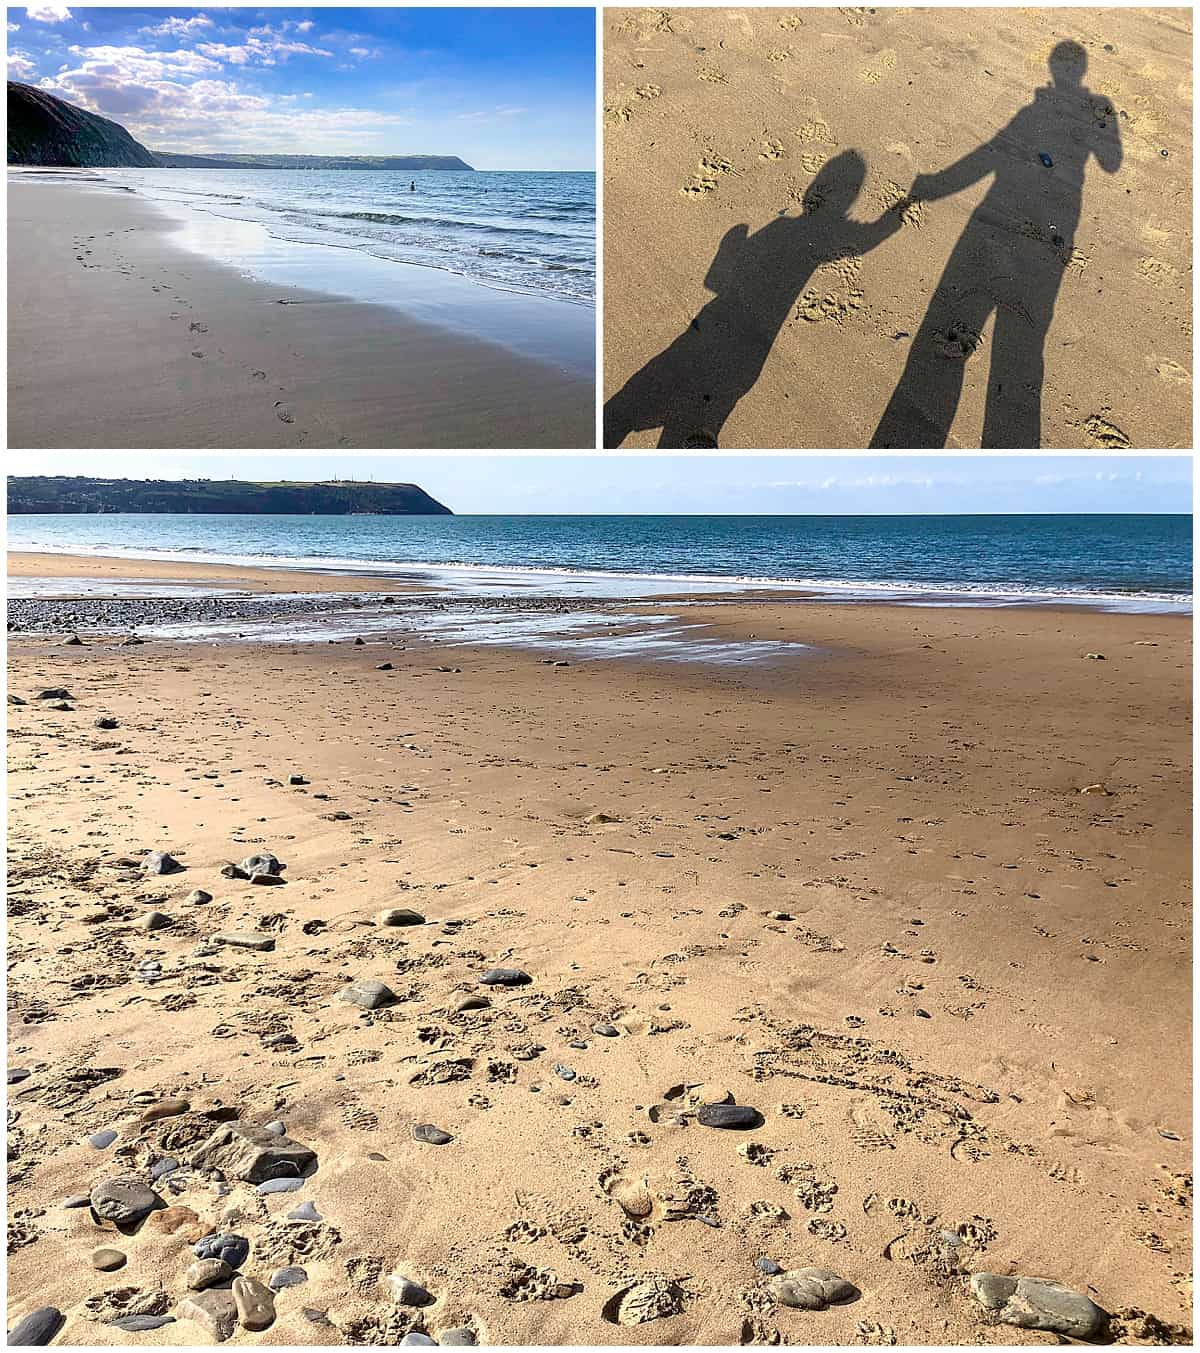 Penbryn Beach Wales - having fun with a toddler